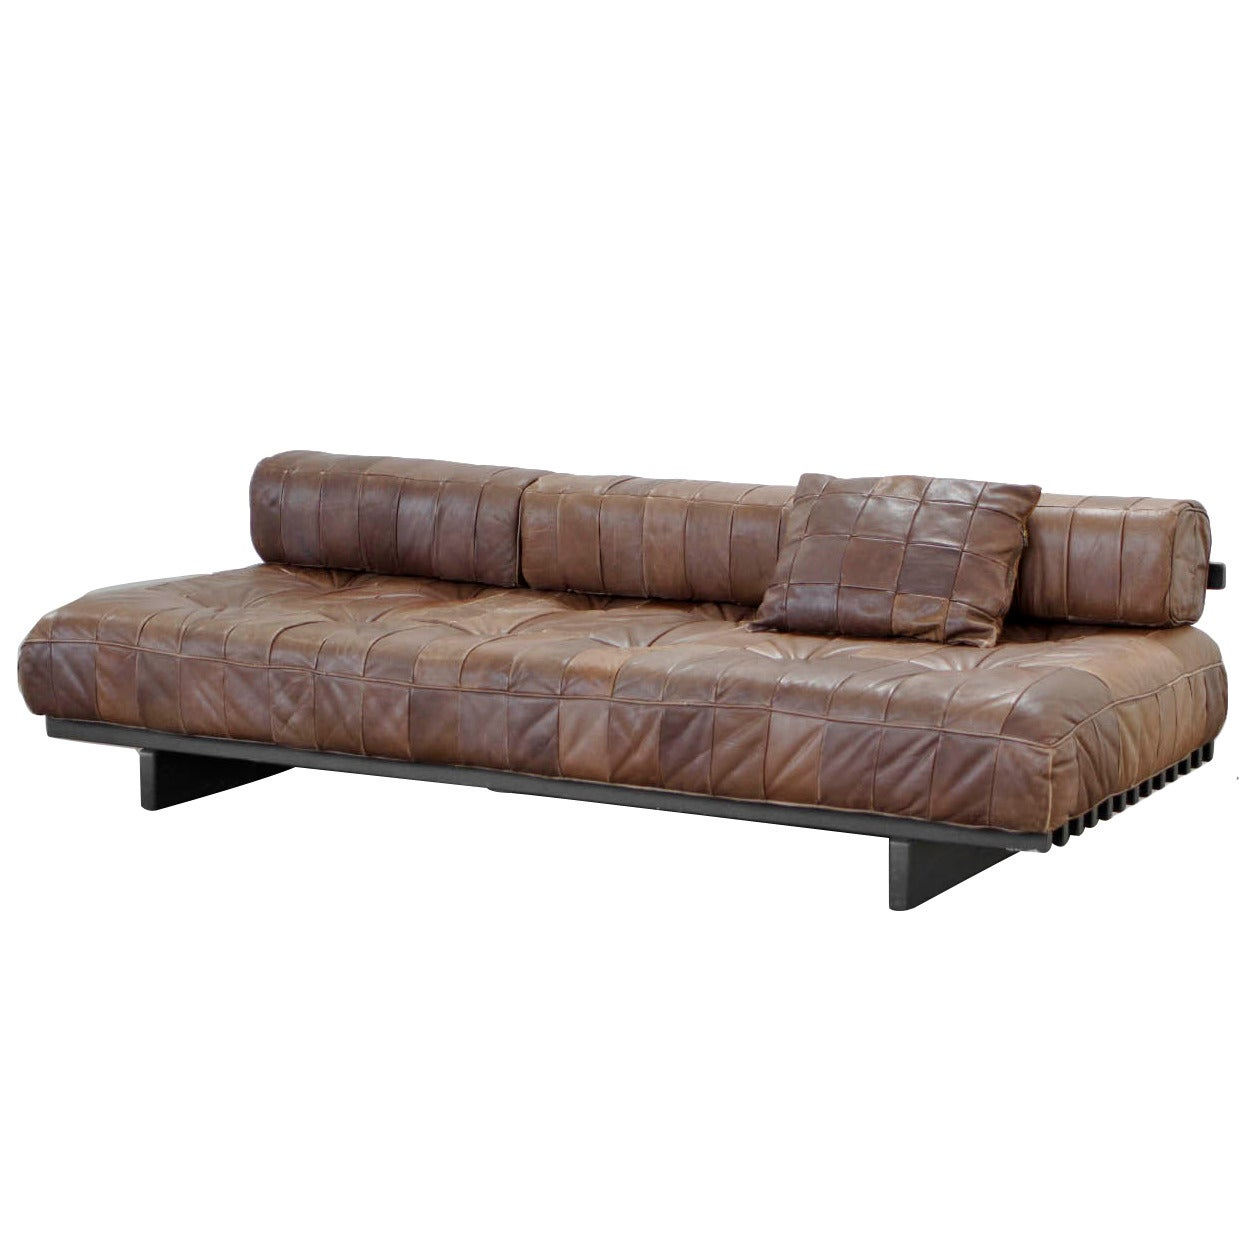 classic daybed sofa by de sede ds 80 1972 at 1stdibs. Black Bedroom Furniture Sets. Home Design Ideas